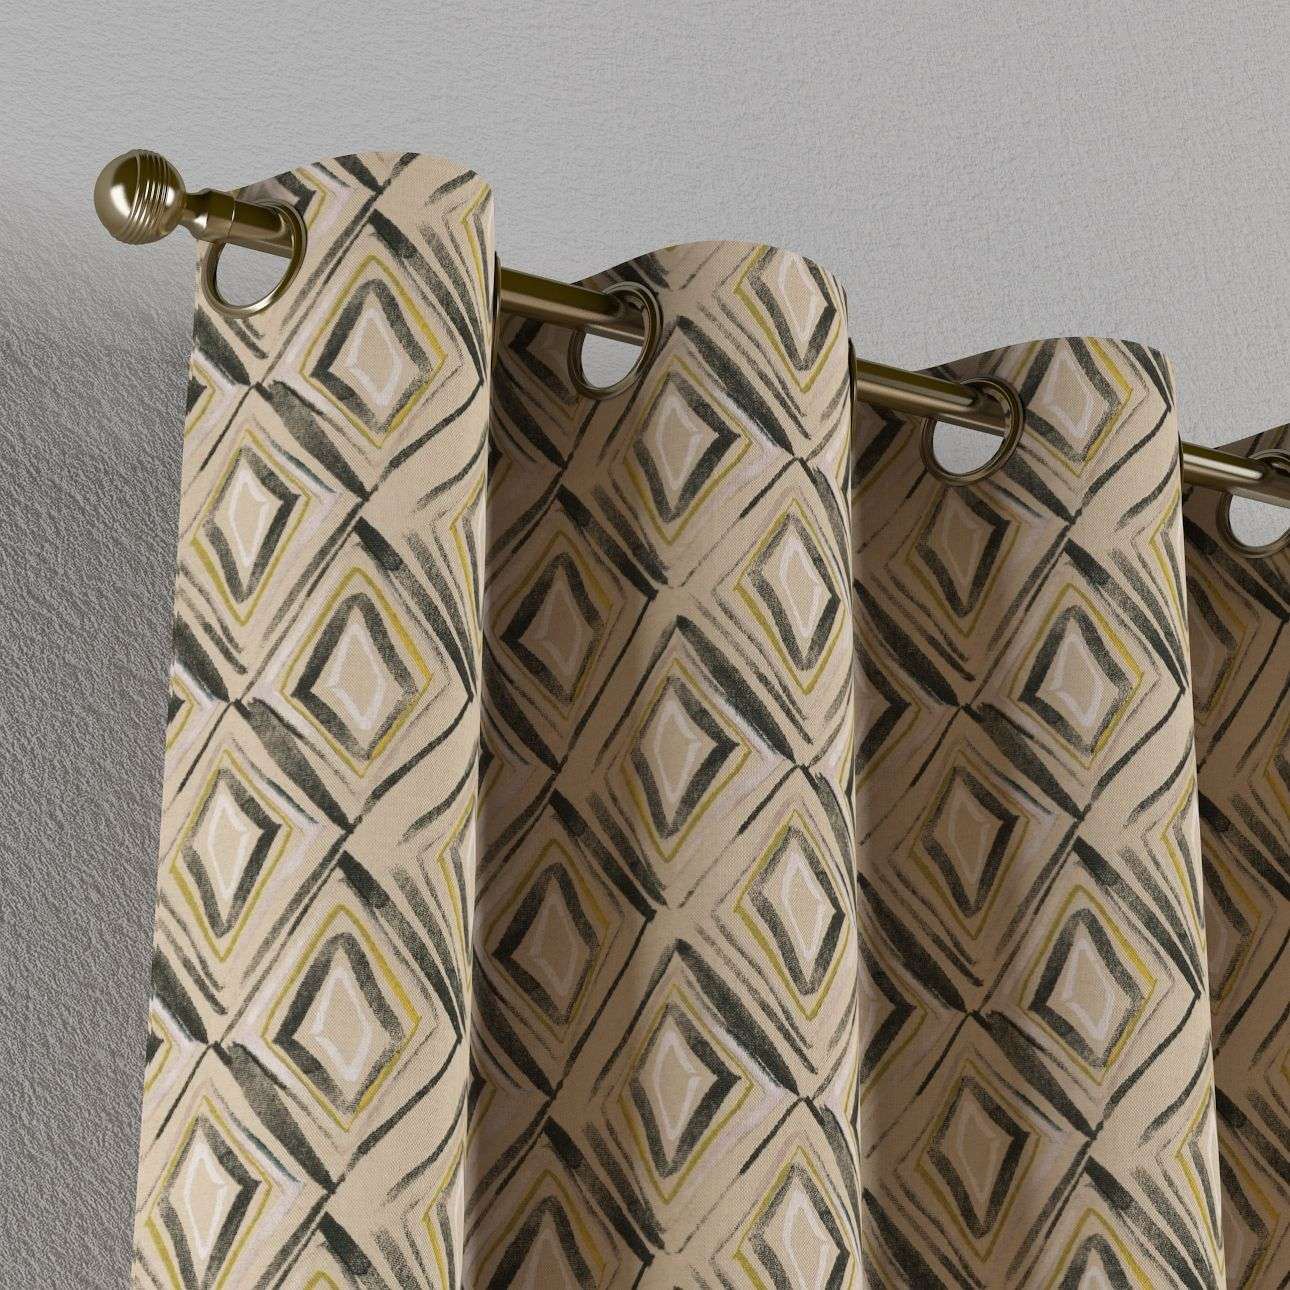 Eyelet curtains 130 × 260 cm (51 × 102 inch) in collection Londres, fabric: 140-46